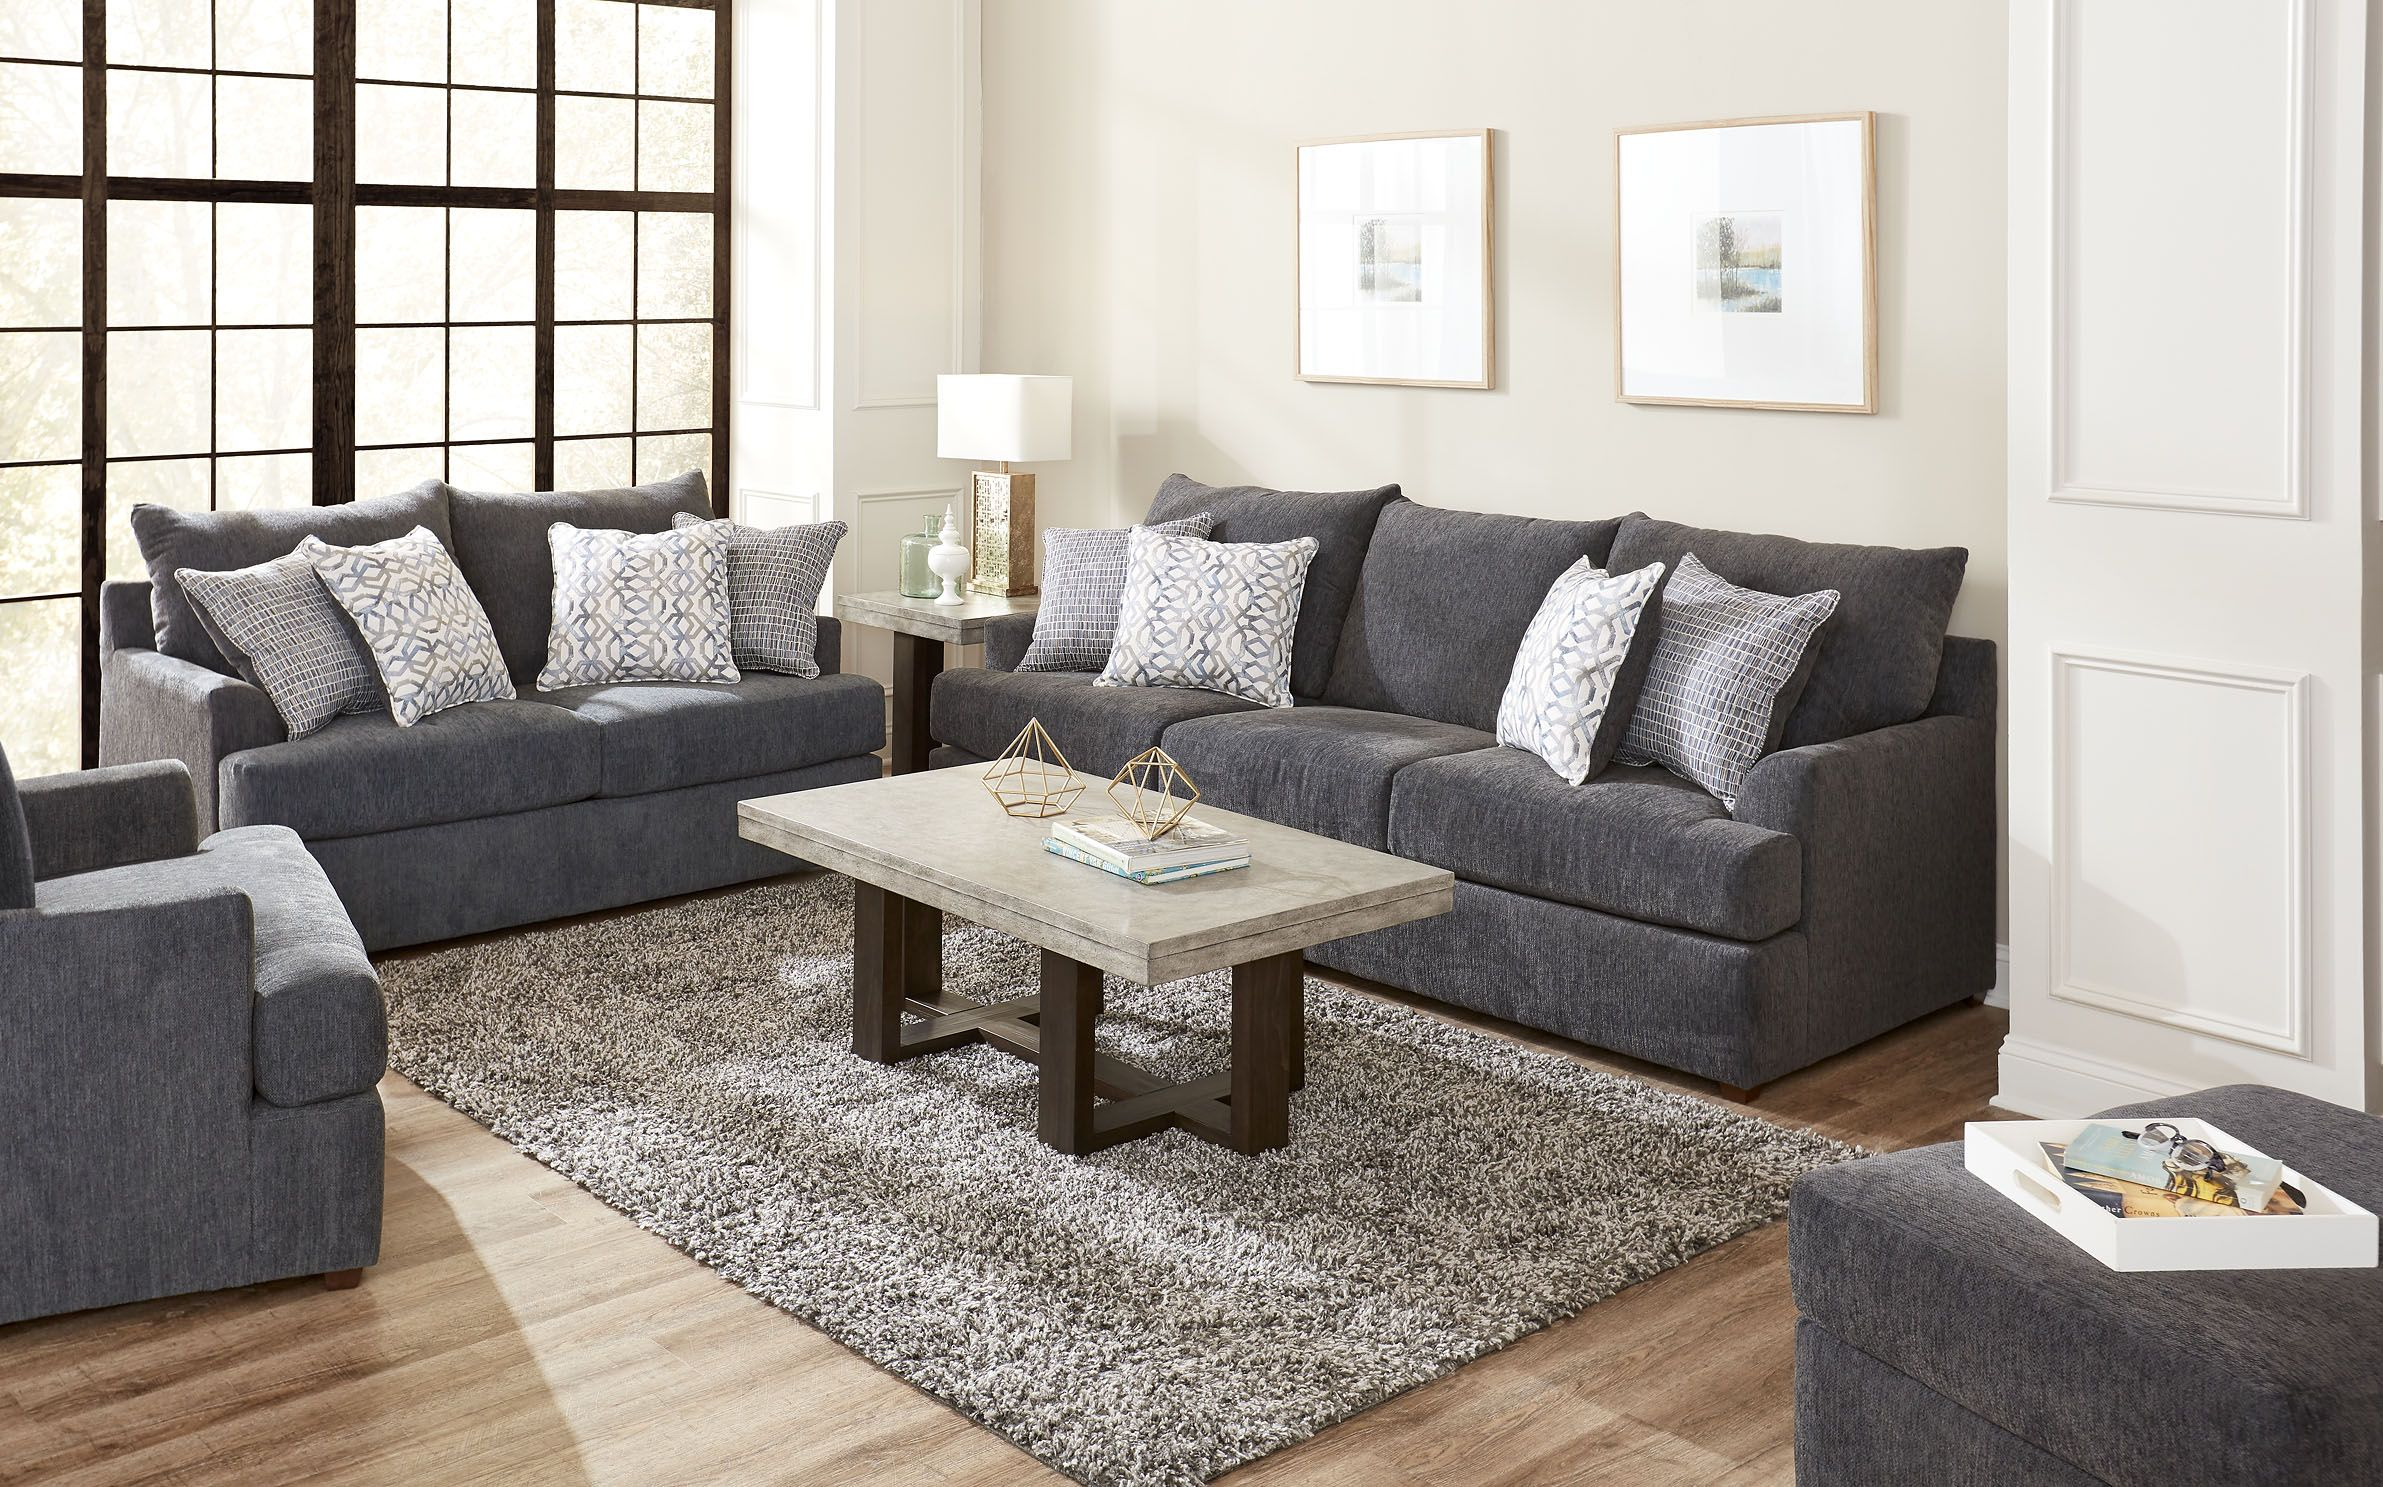 The Stephenson Sofa Set Price Includes Sofa Loveseat And Chair This Beautiful So Furniture Design Living Room Accent Pillows Living Room Living Room Cushions